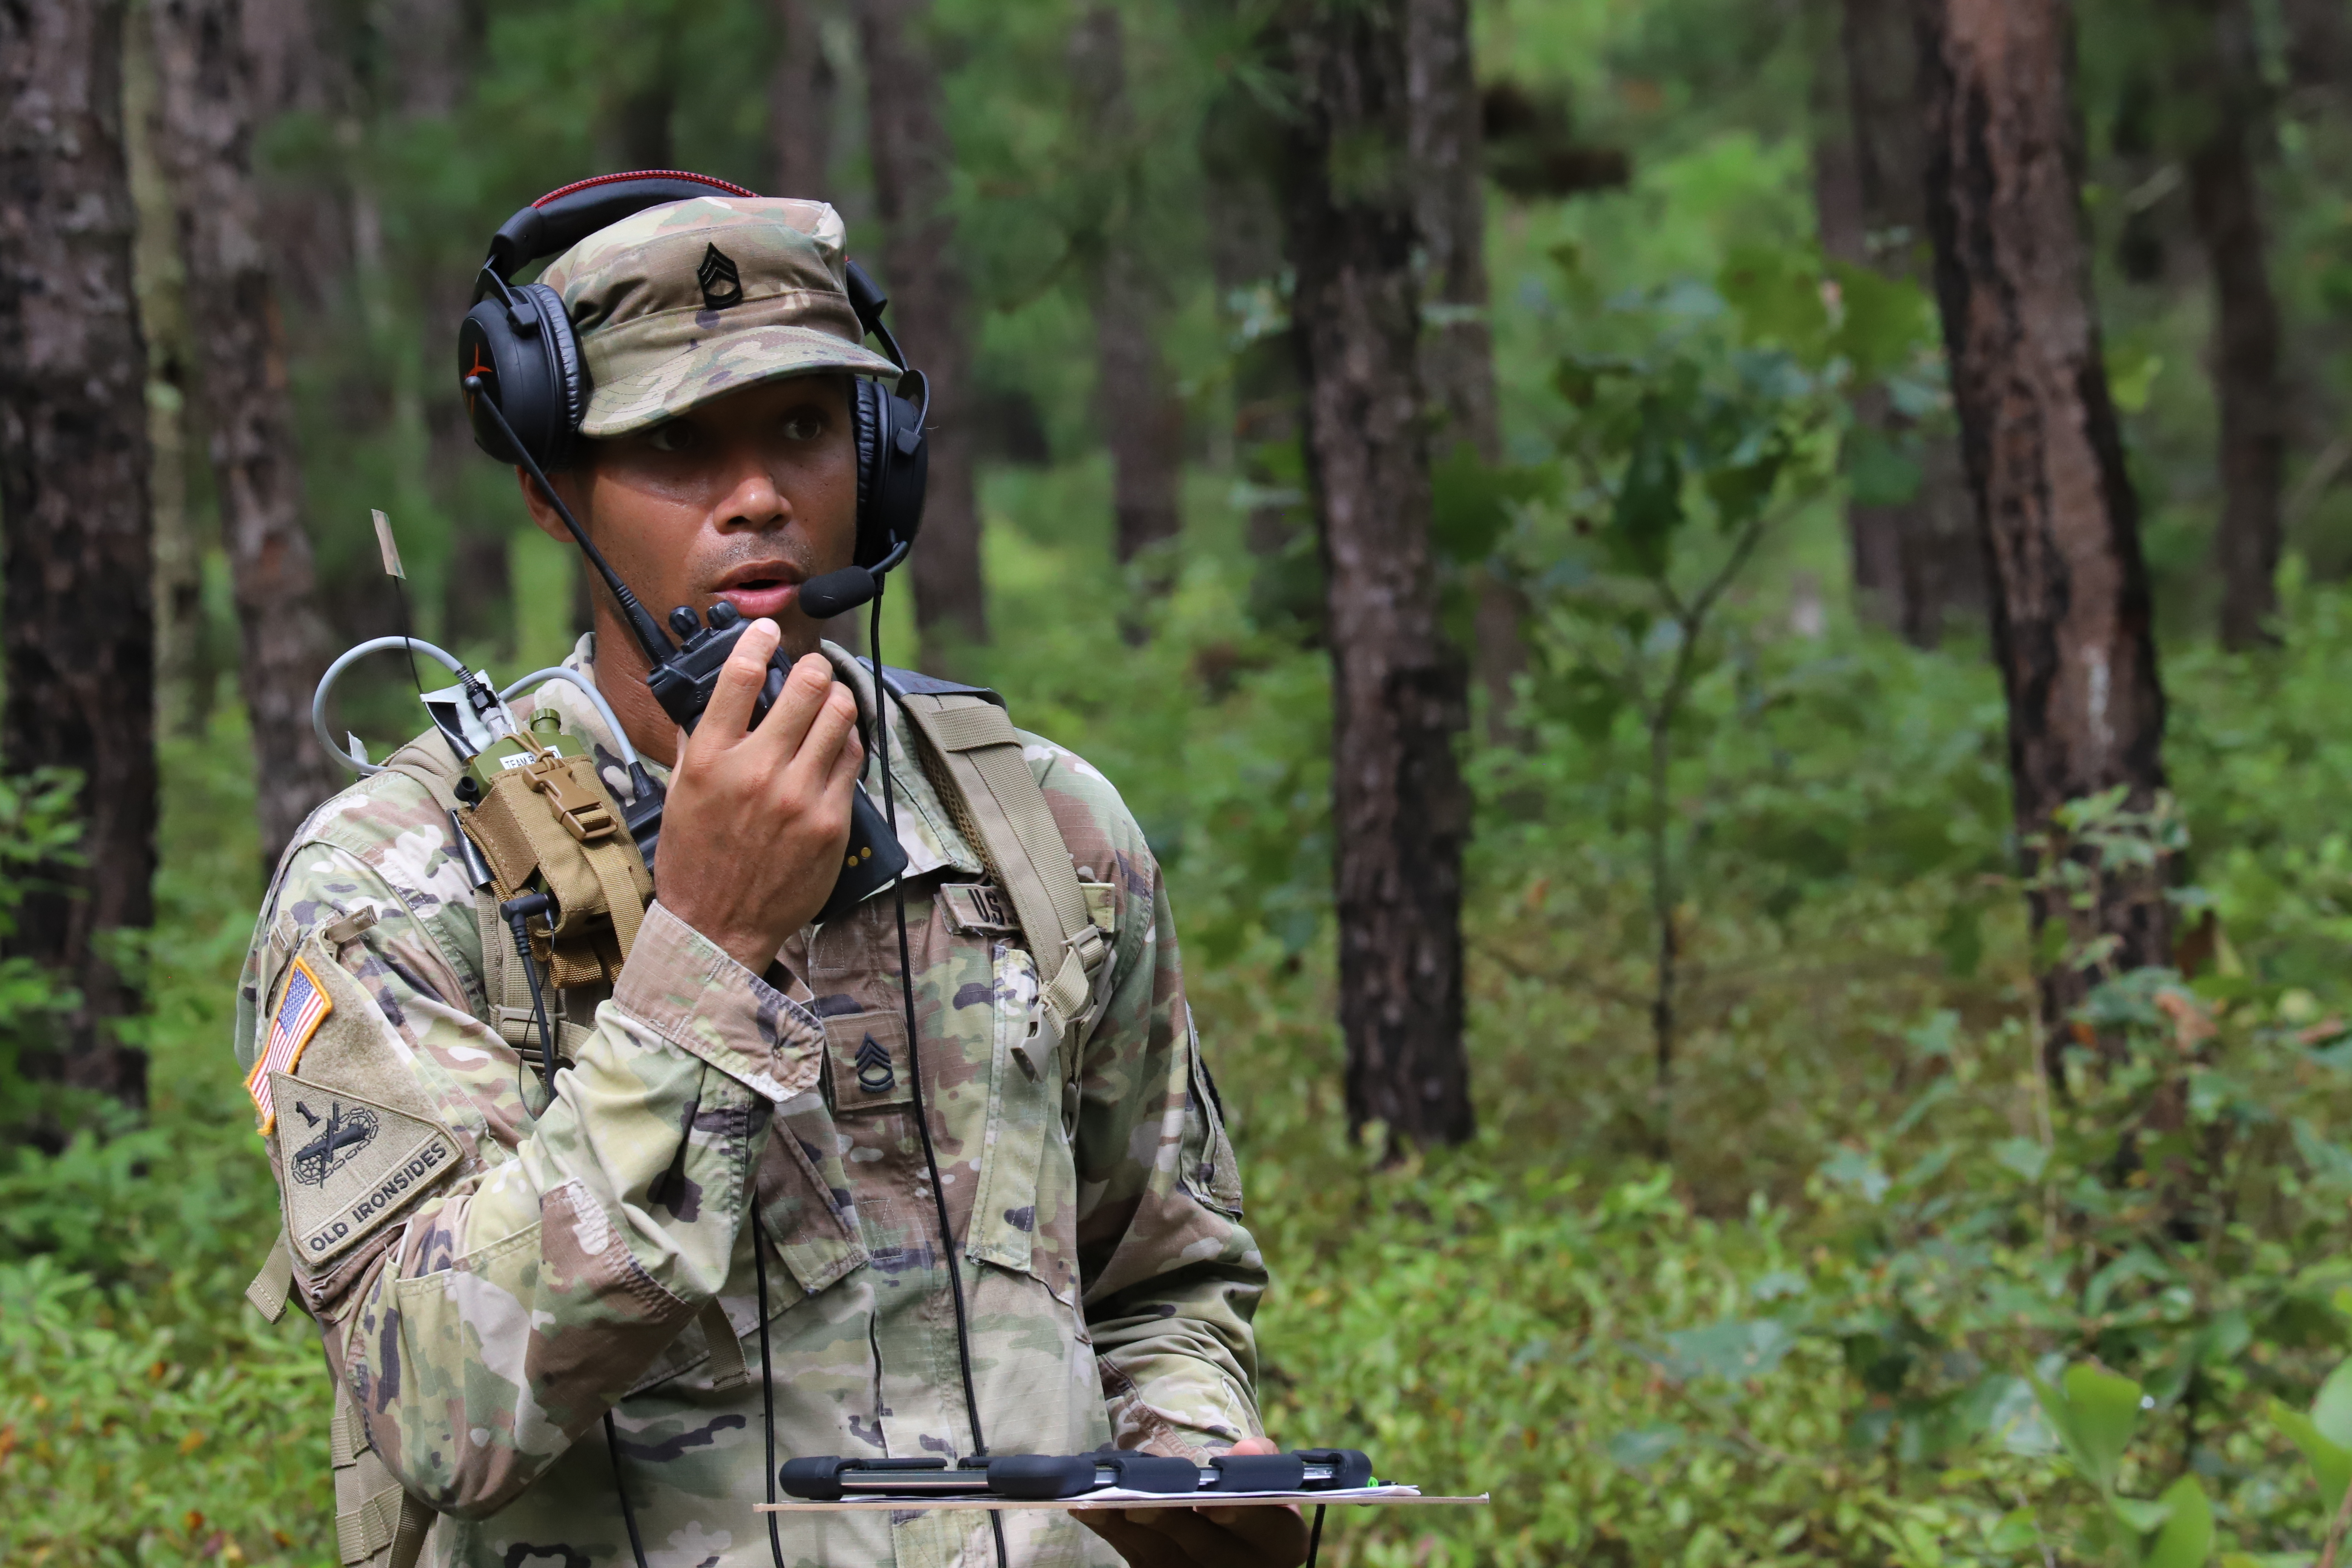 The latest Network Modernization Experiment took place at Joint Base McGuire-Dix-Lakehurst, N.J., which served as the command post, while Aberdeen Proving Ground, Maryland, served as the division headquarters. (Jasmyne Douglas/U.S. Army)